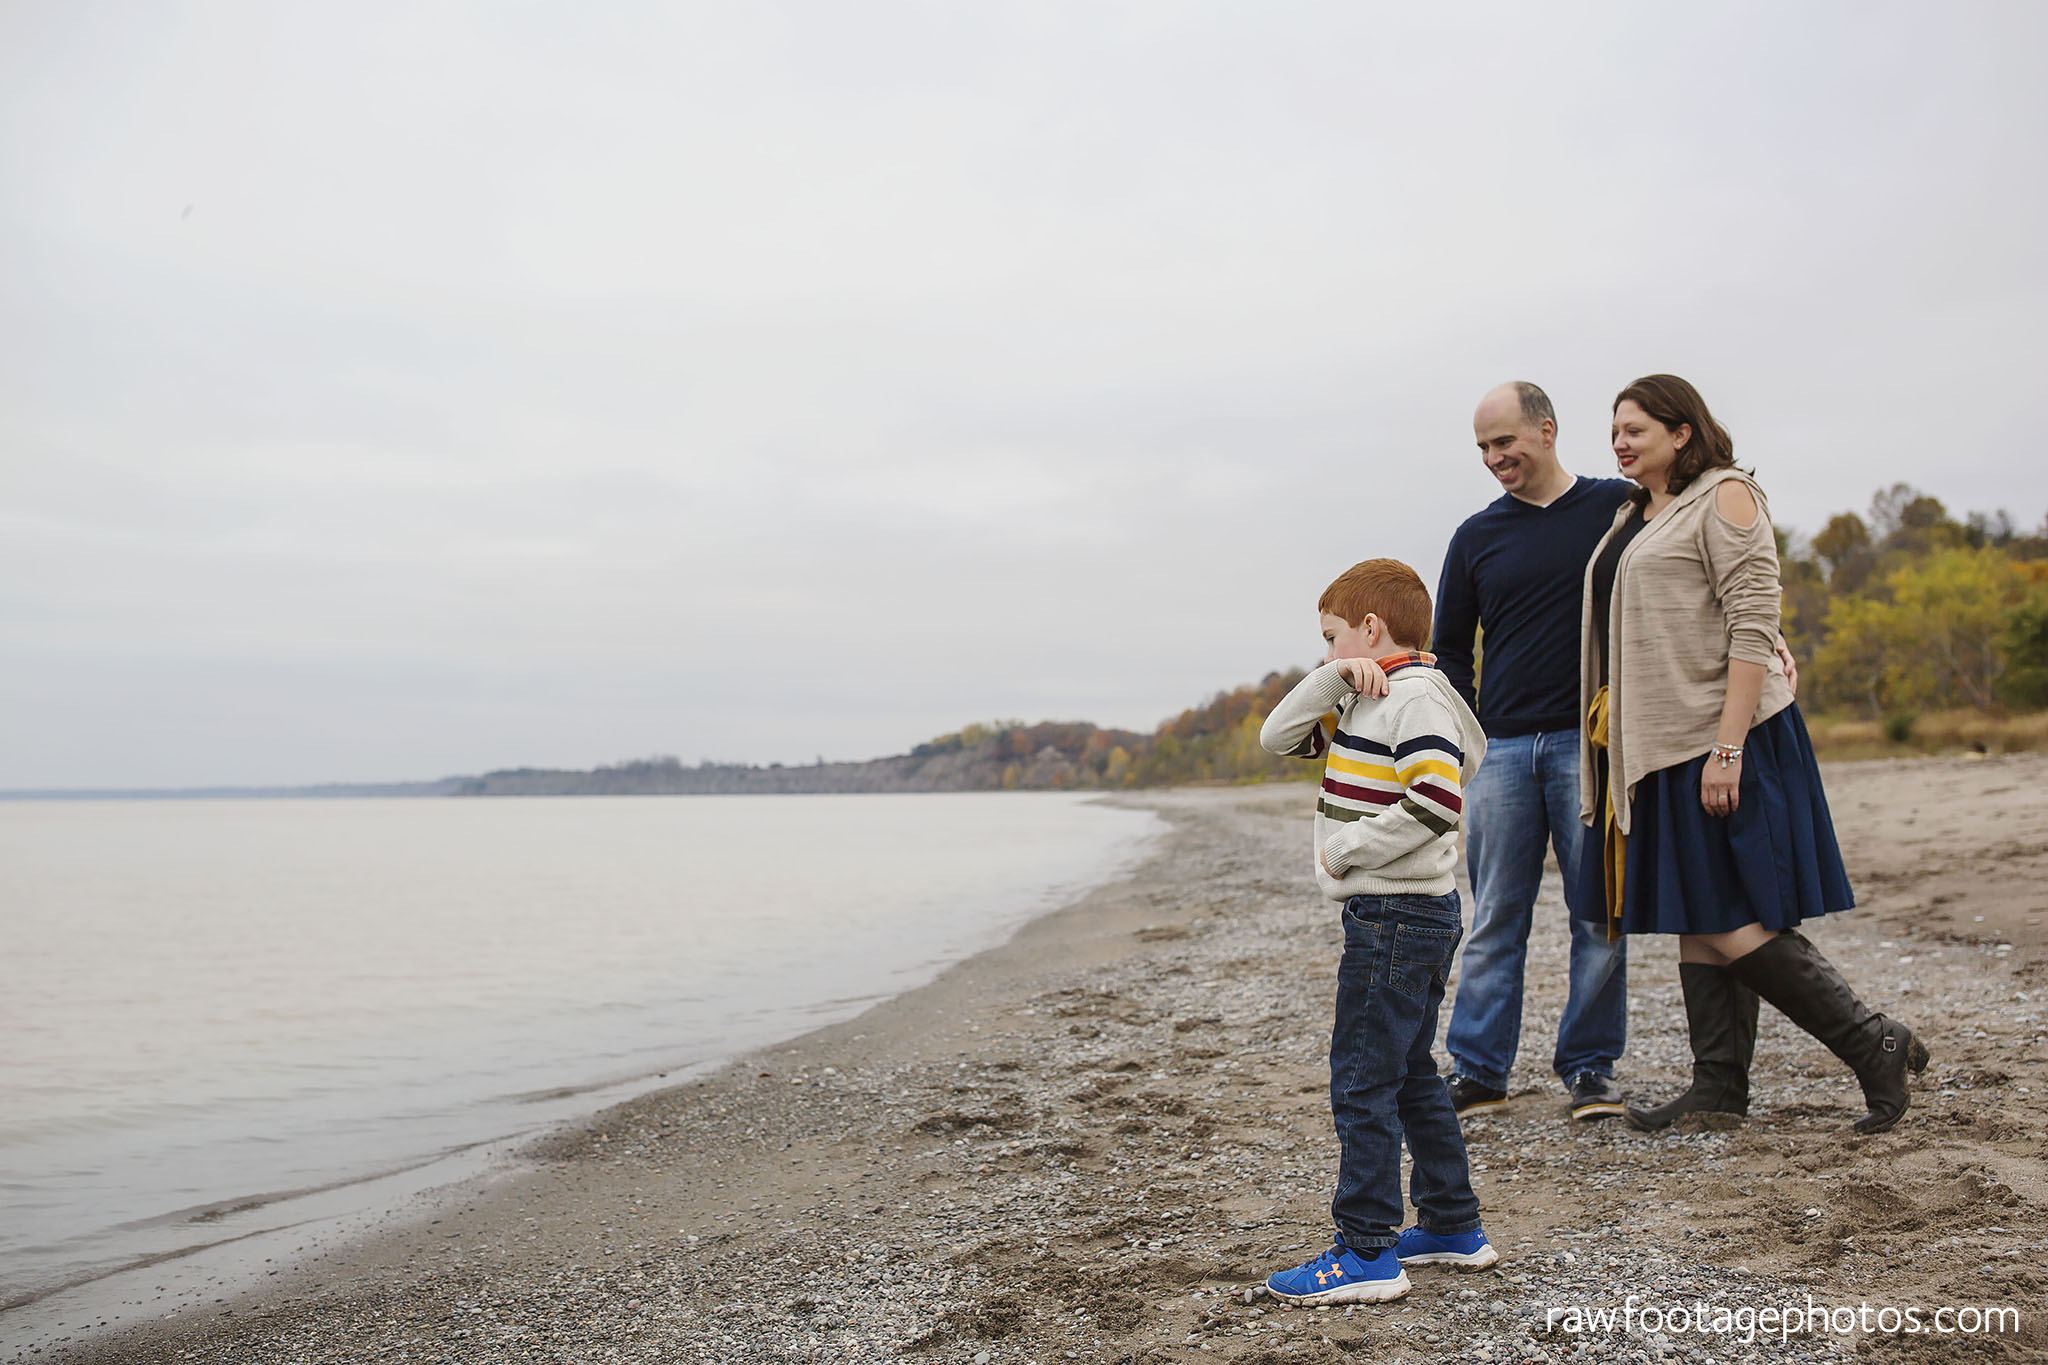 london_ontario_family_photographer-port_stanley_photography-raw_footage_photography-family_photos-beach_photos-fall_family_photos-lifestyle_family_photography-candid_photographer005.jpg